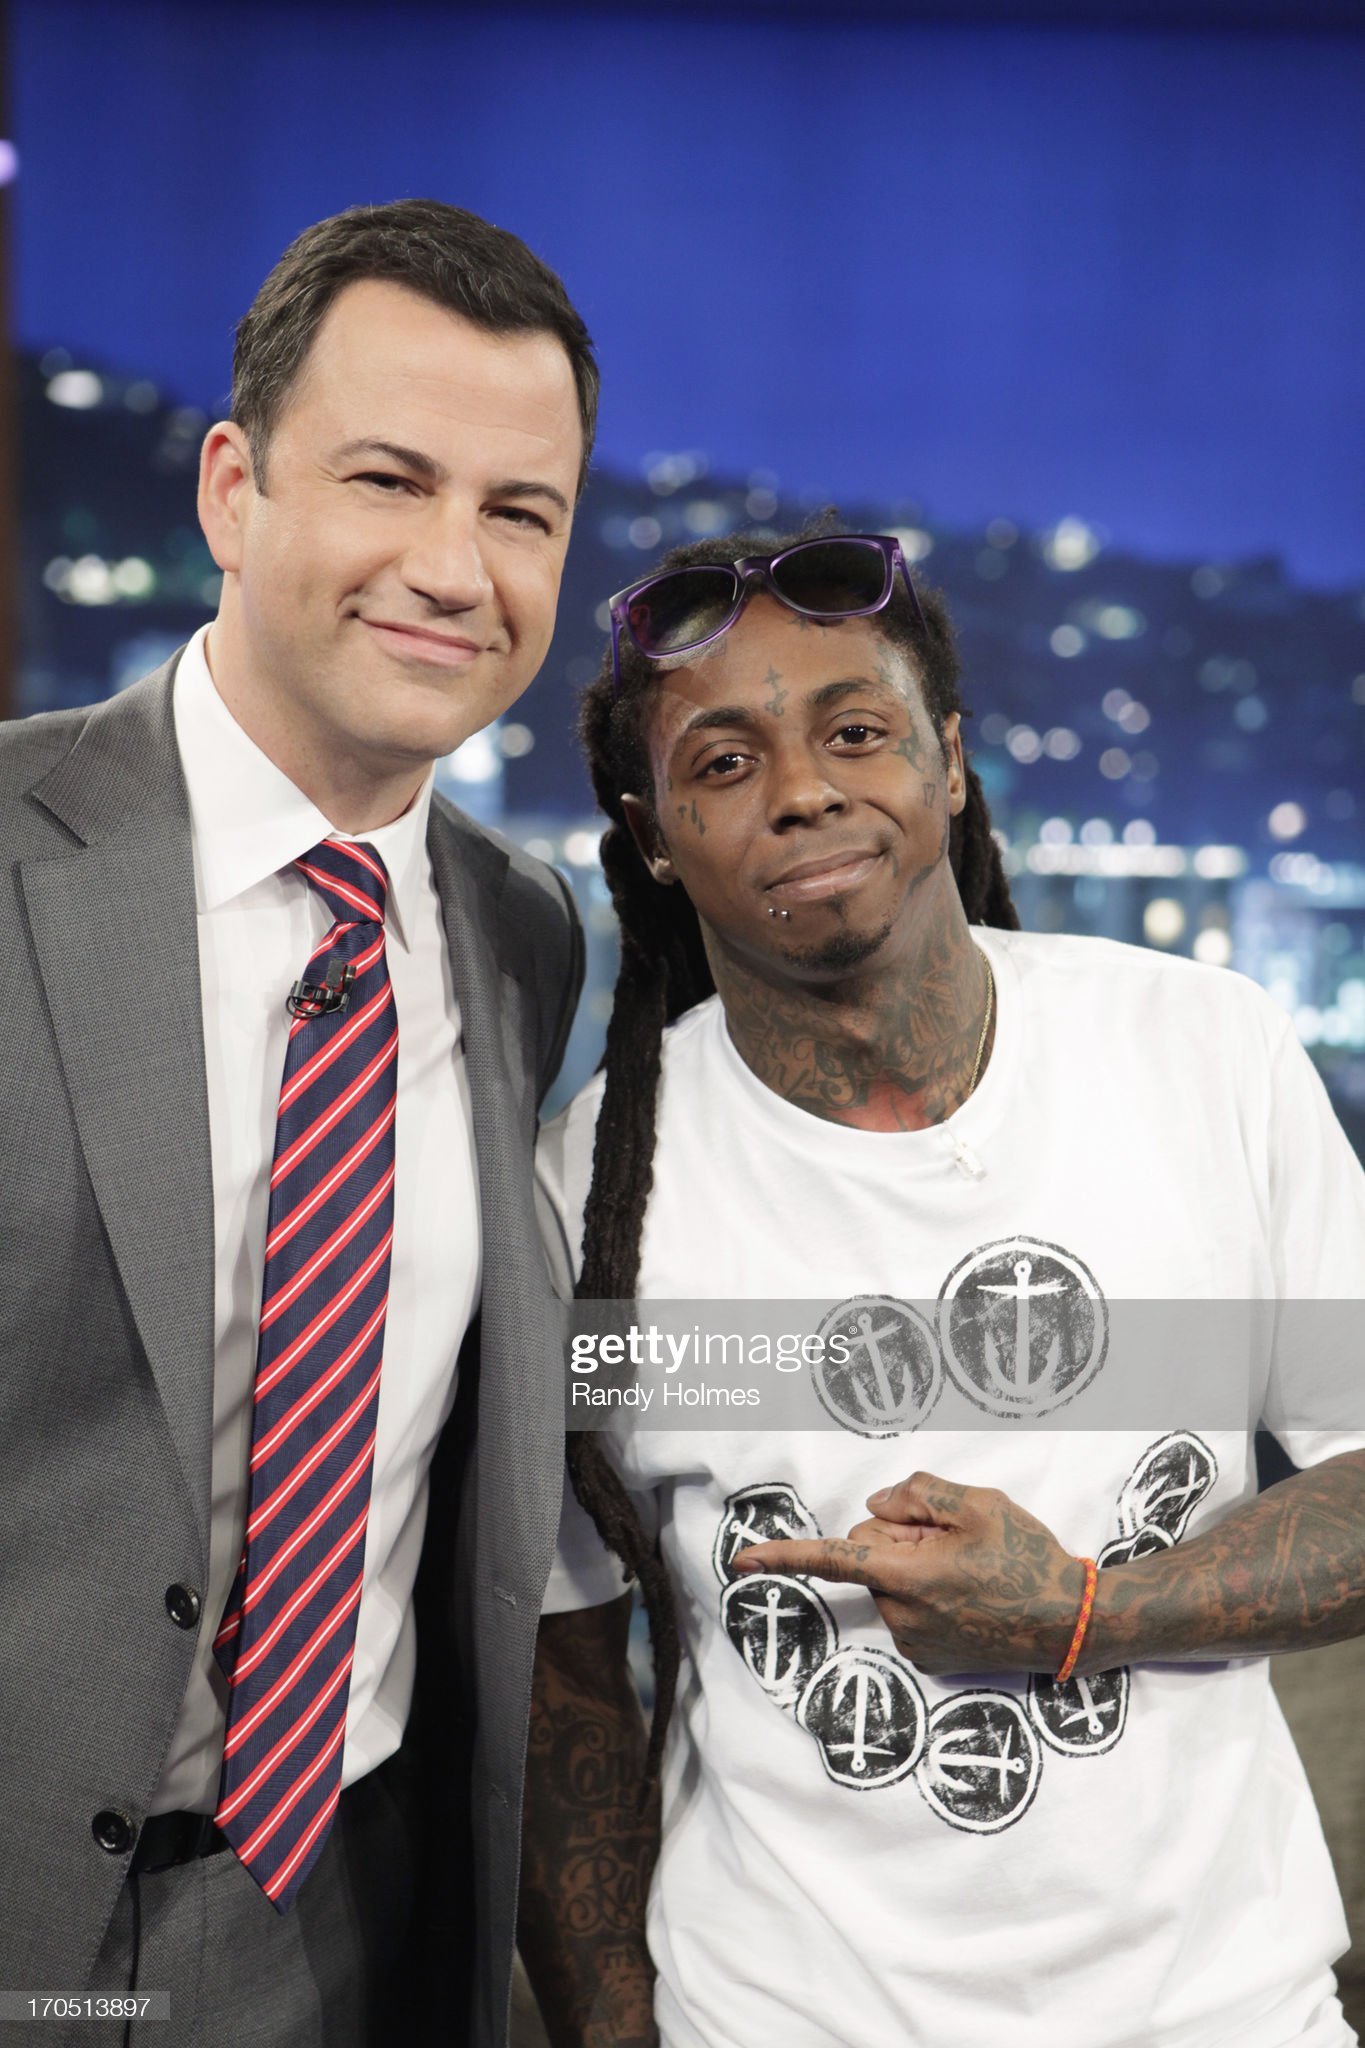 ¿Cuánto mide Lil Wayne? - Real height Emmy-awardnominated-jimmy-kimmel-live-airs-every-weeknight-packed-picture-id170513897?s=2048x2048